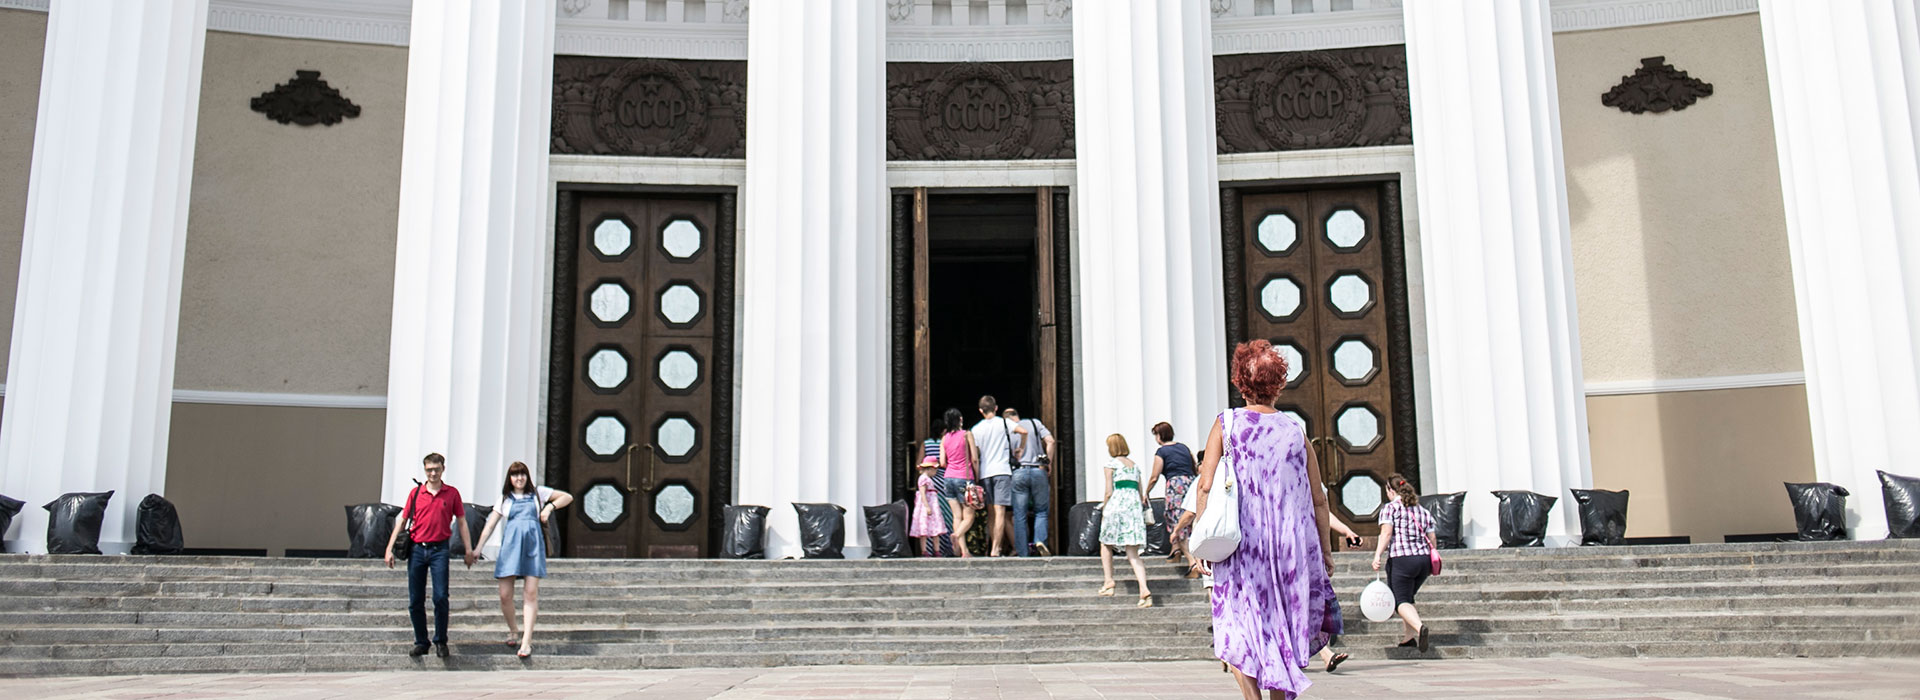 Grand designs: can a Stalinist propaganda park become an appealing public space?